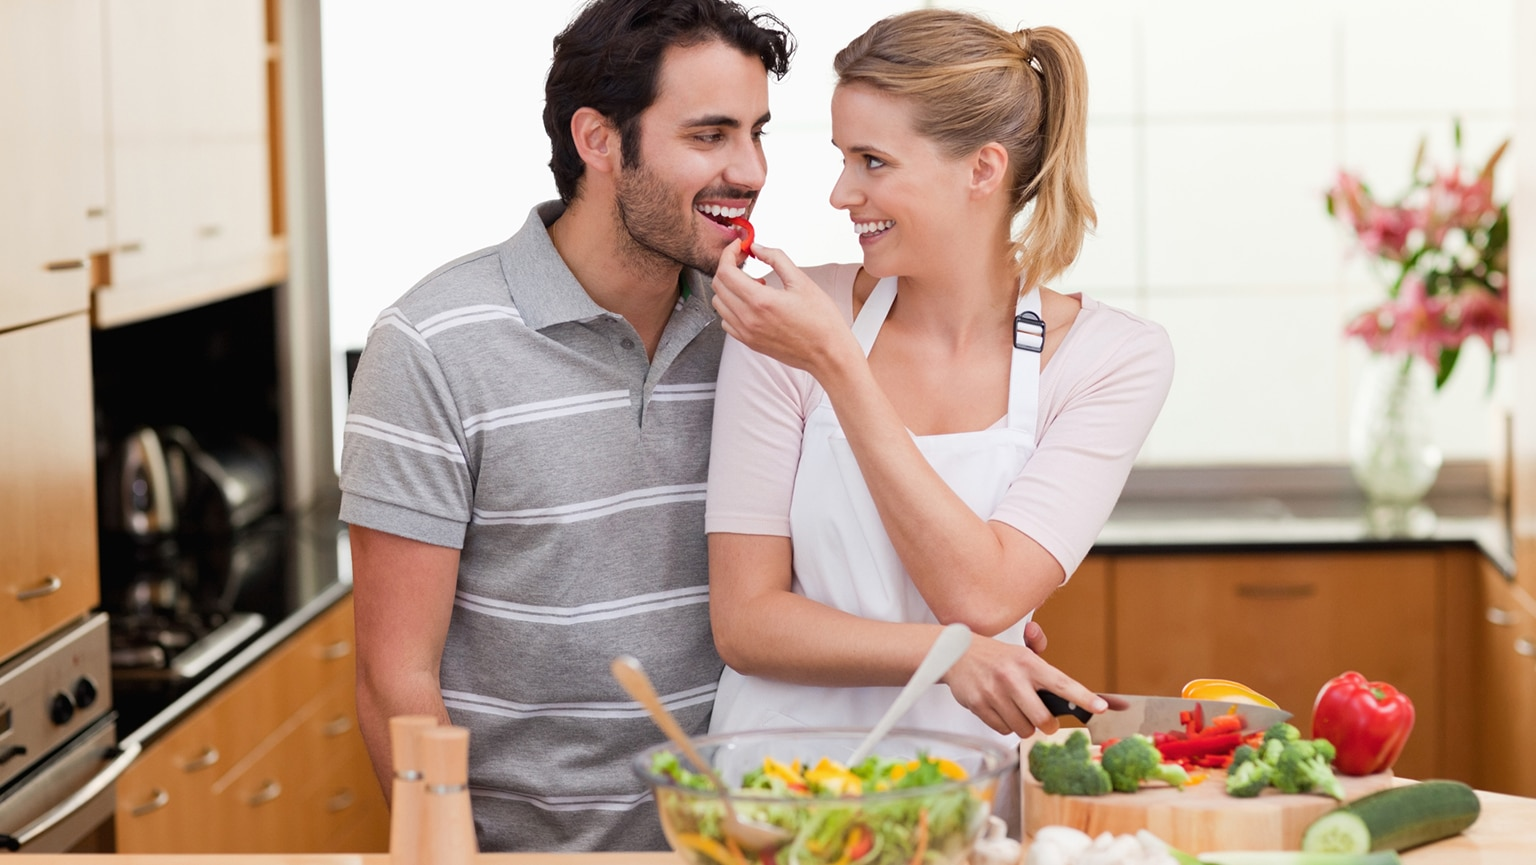 Making Healthy Cooking a Lifestyle